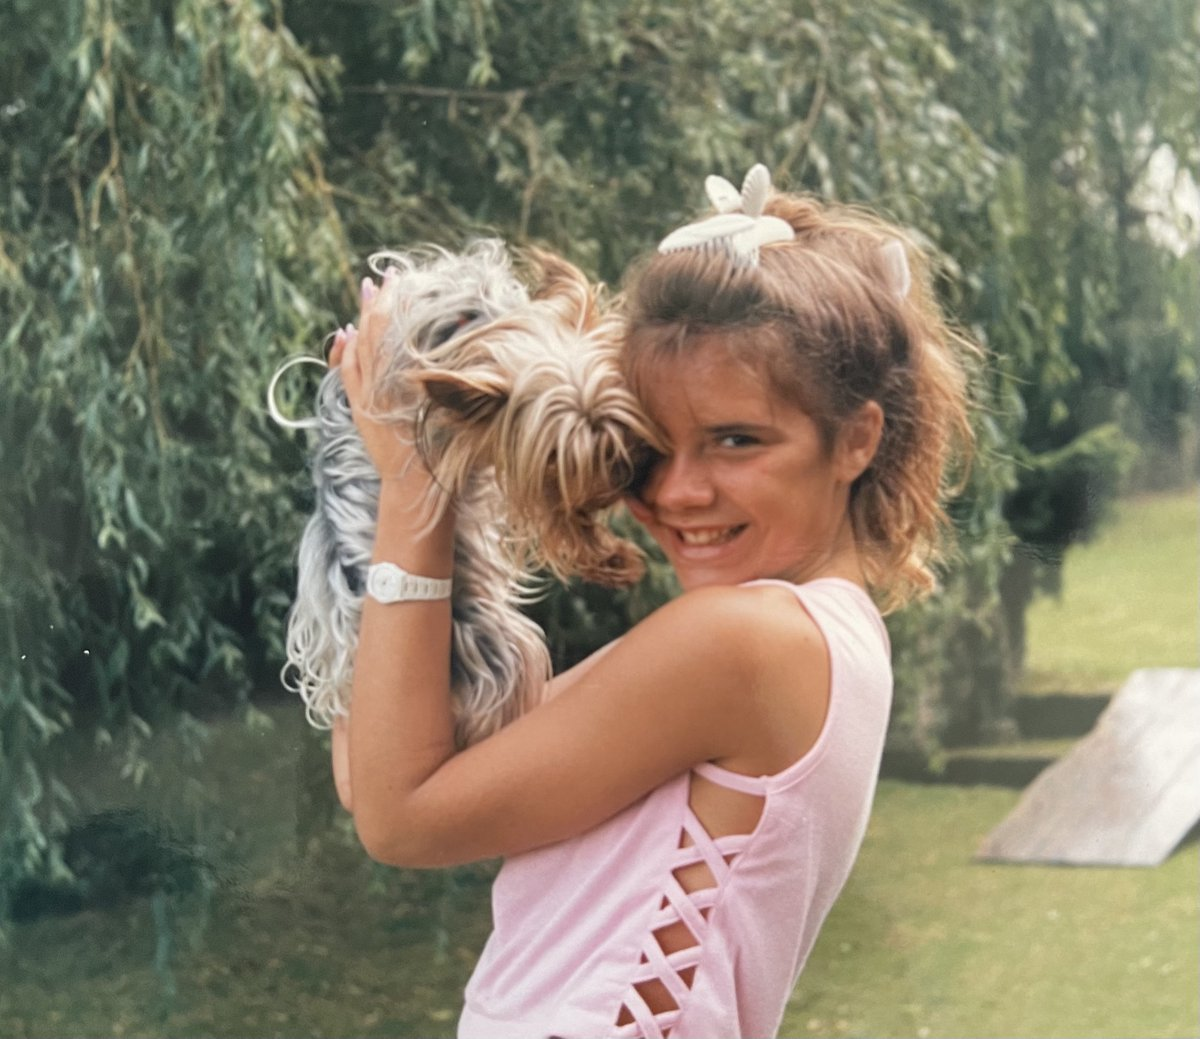 A retro moment for #InternationalDogDay! Aged 13 with Bambi the dog in some very chic banana clips (they're back in right? I've always been a trend setter 😂) https://t.co/kKUlkY7MQJ